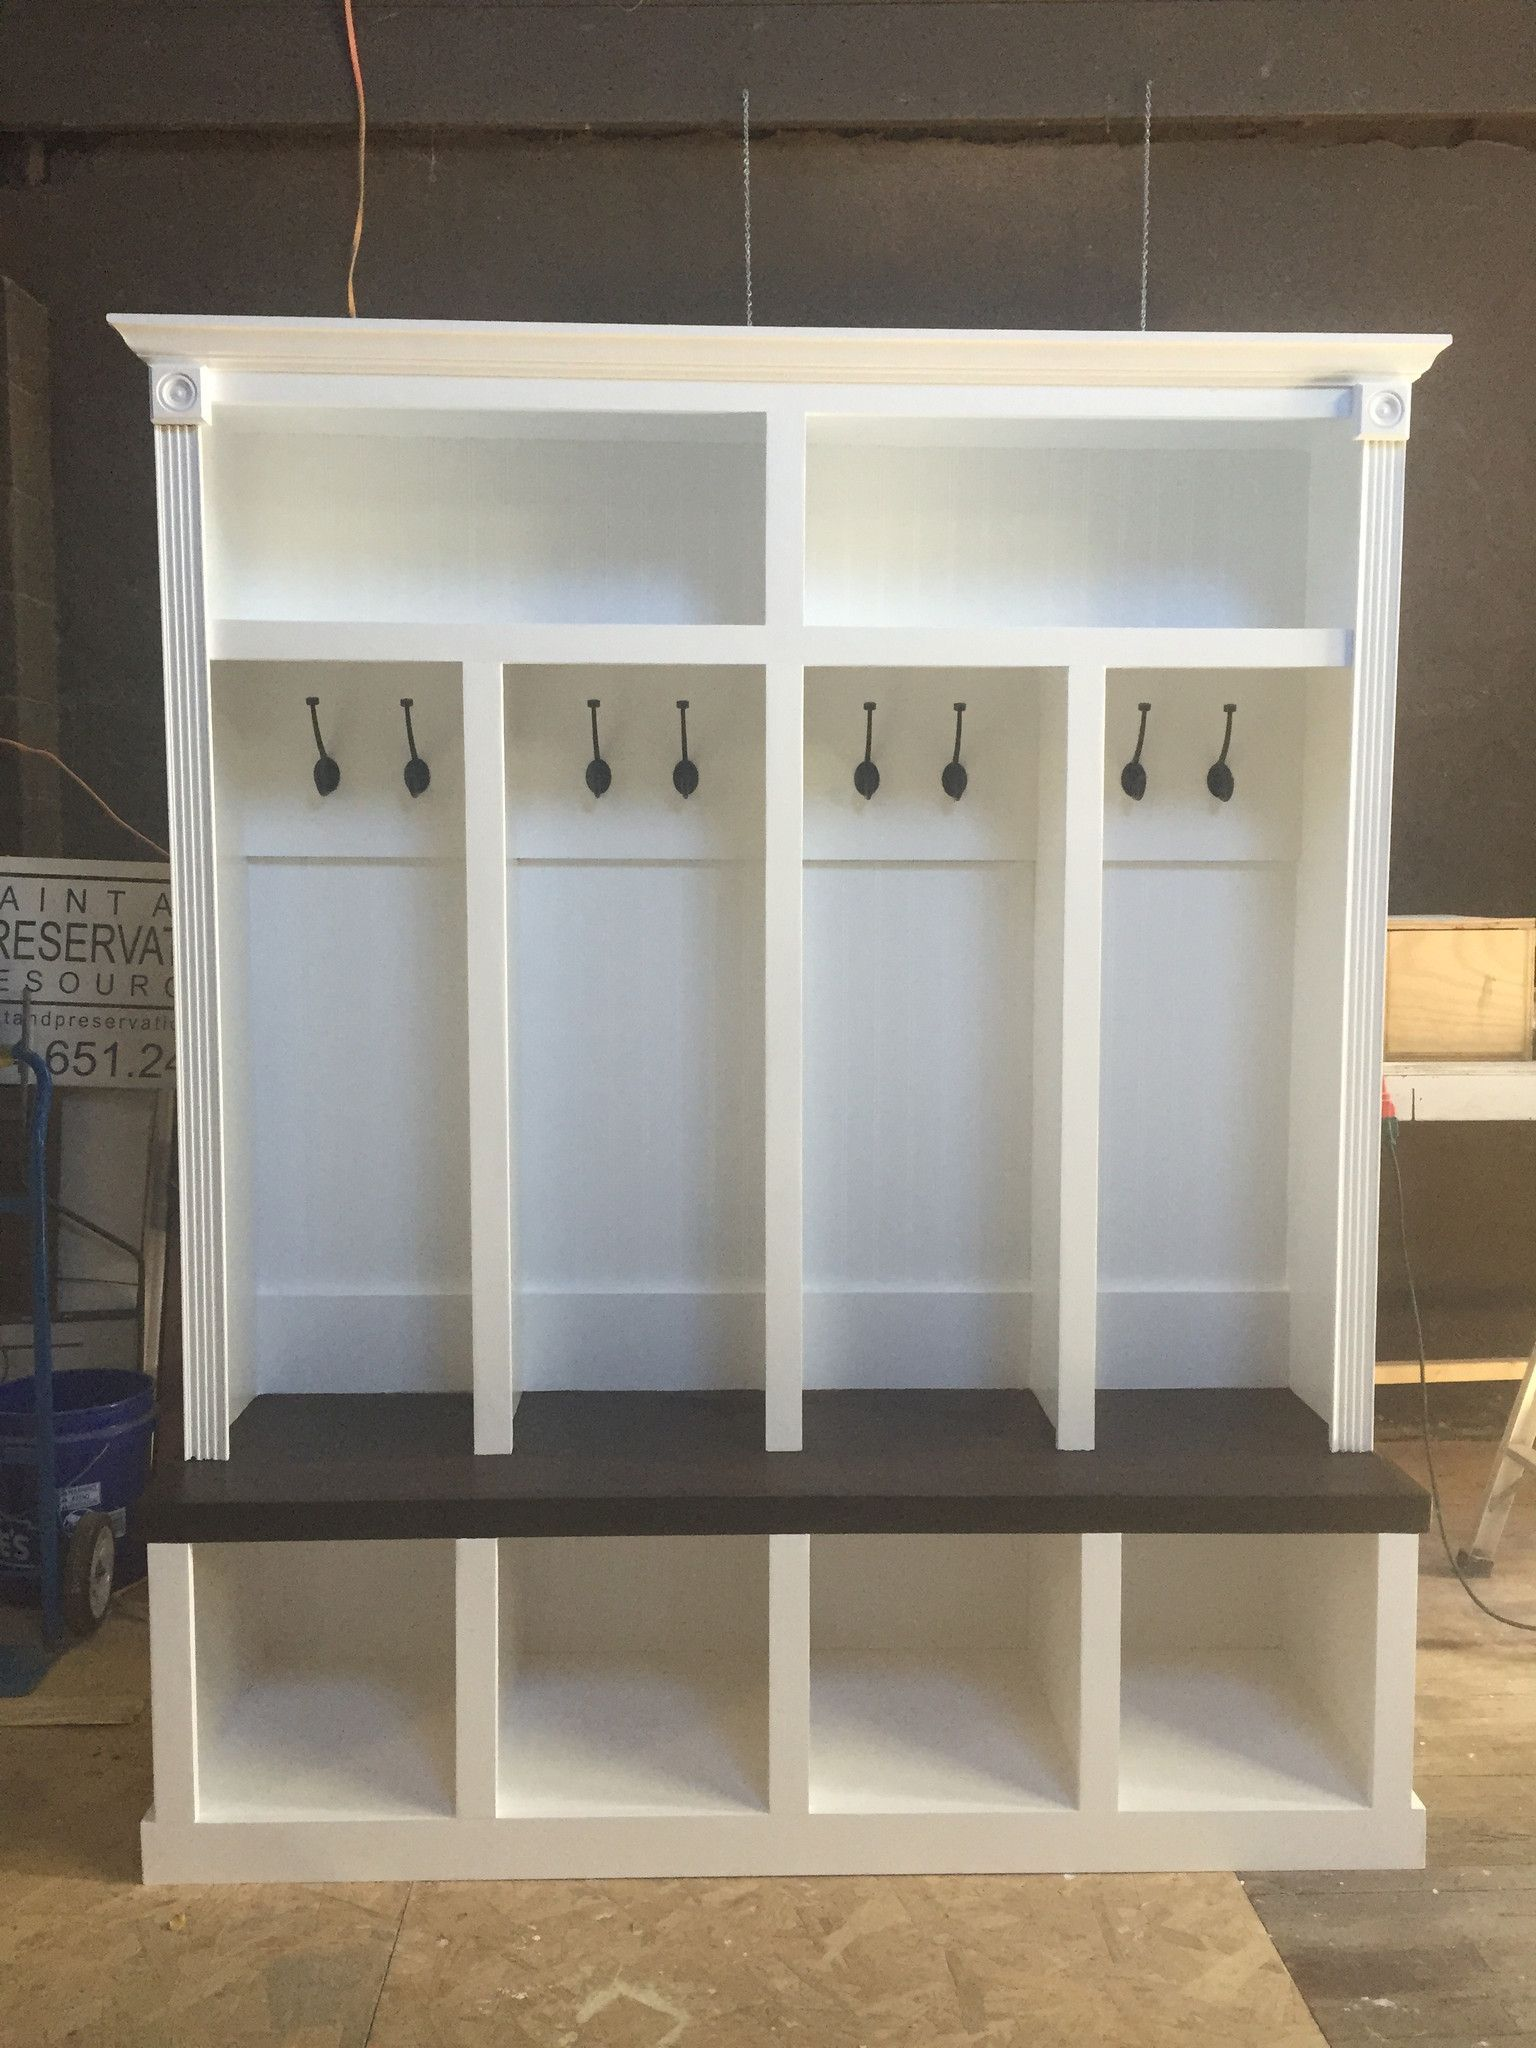 Entryway Locker Dropzone For Mudroom 4 Cubby